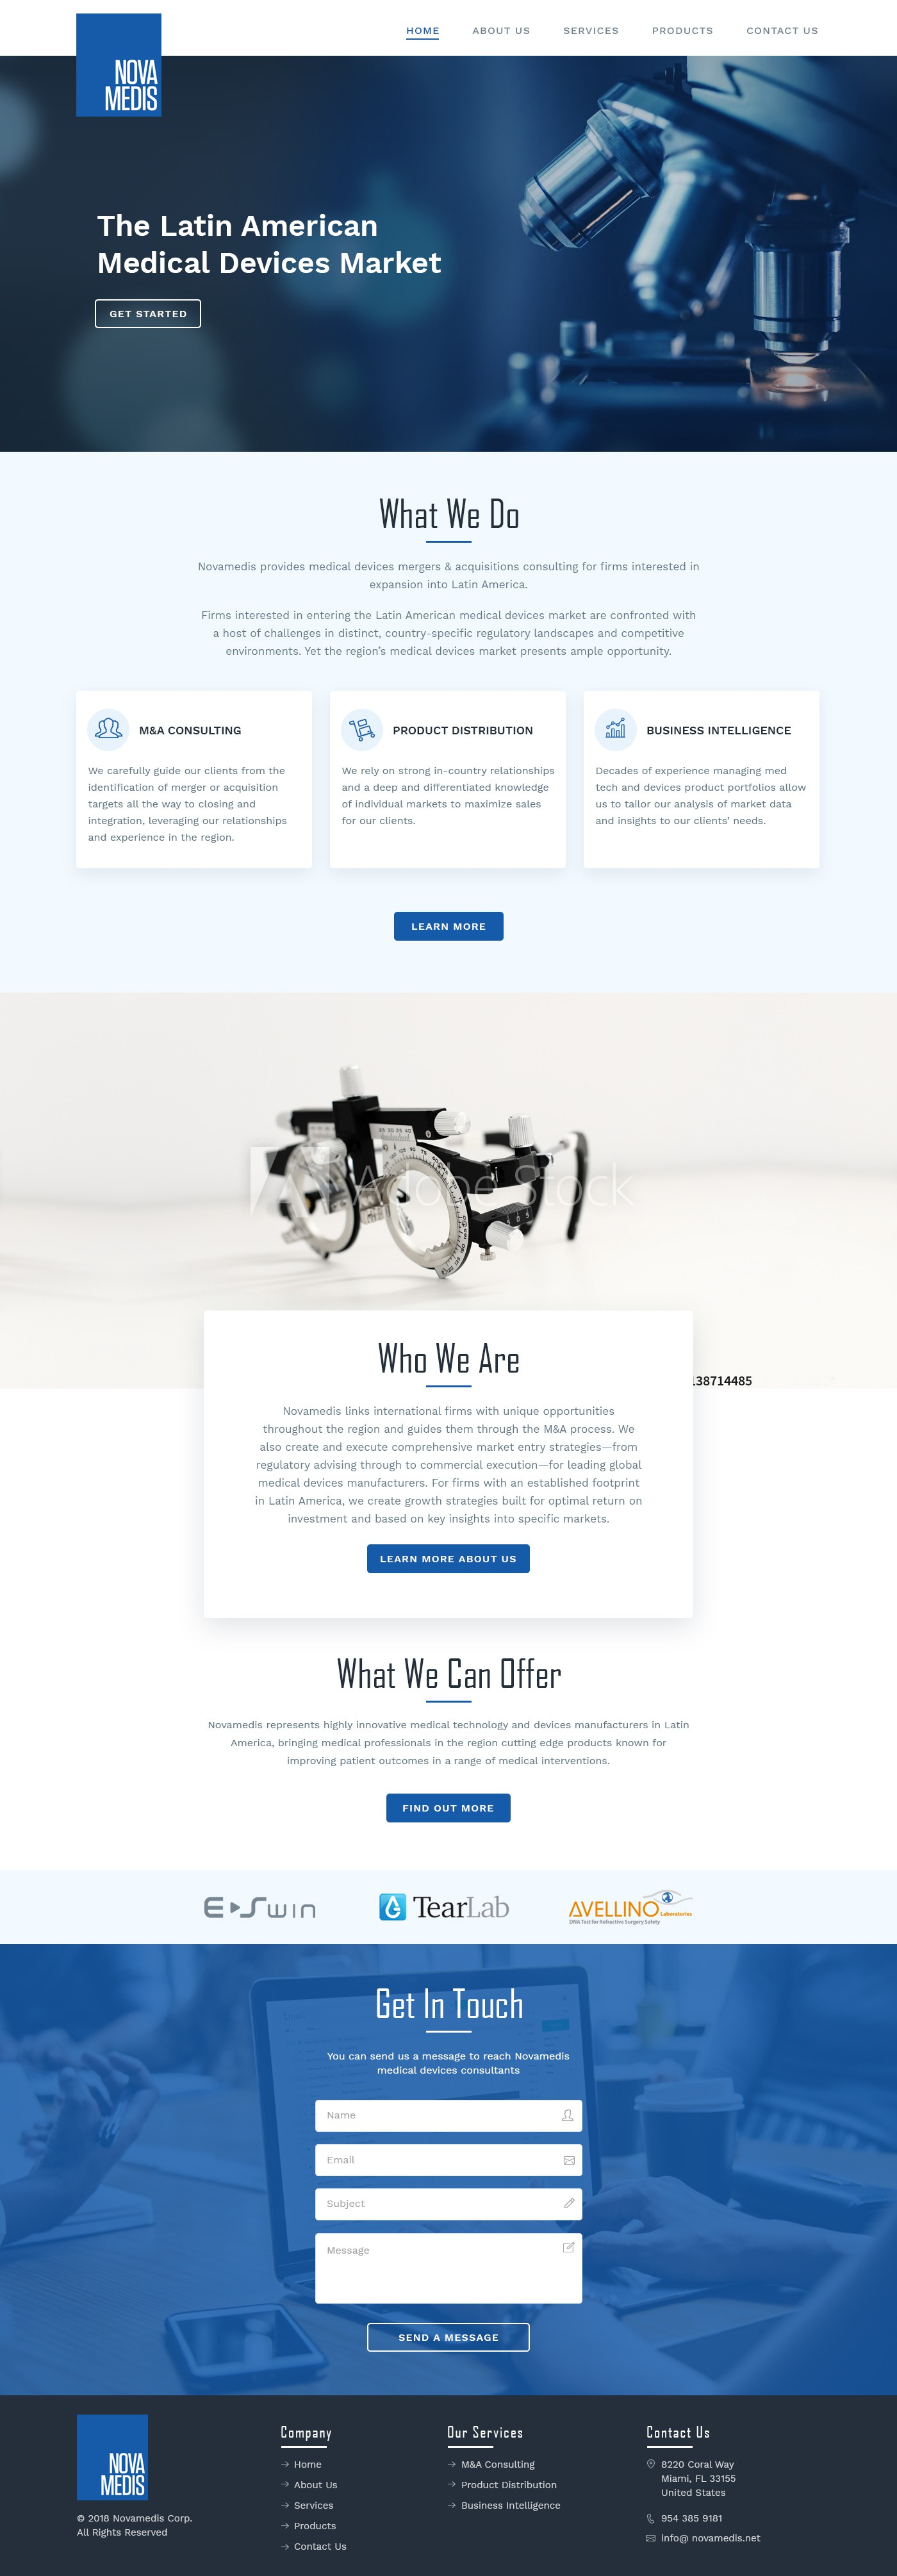 Redesign a medical devices consulting page.